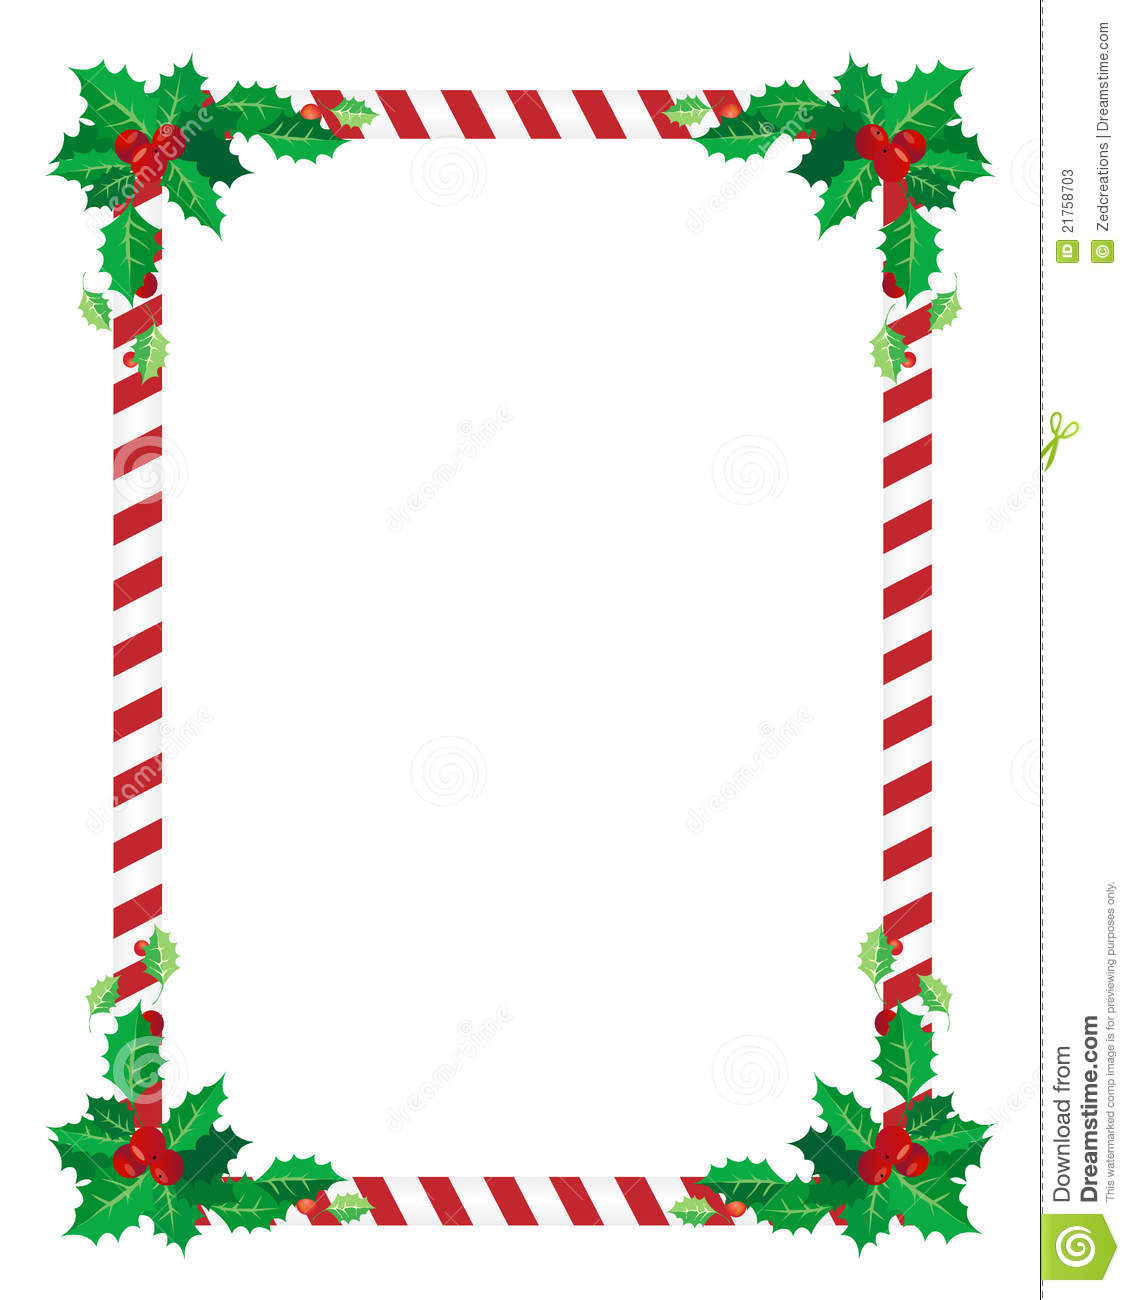 Christmas Borders Clipart.Artist Clipart Border Artist Border Transparent Free For